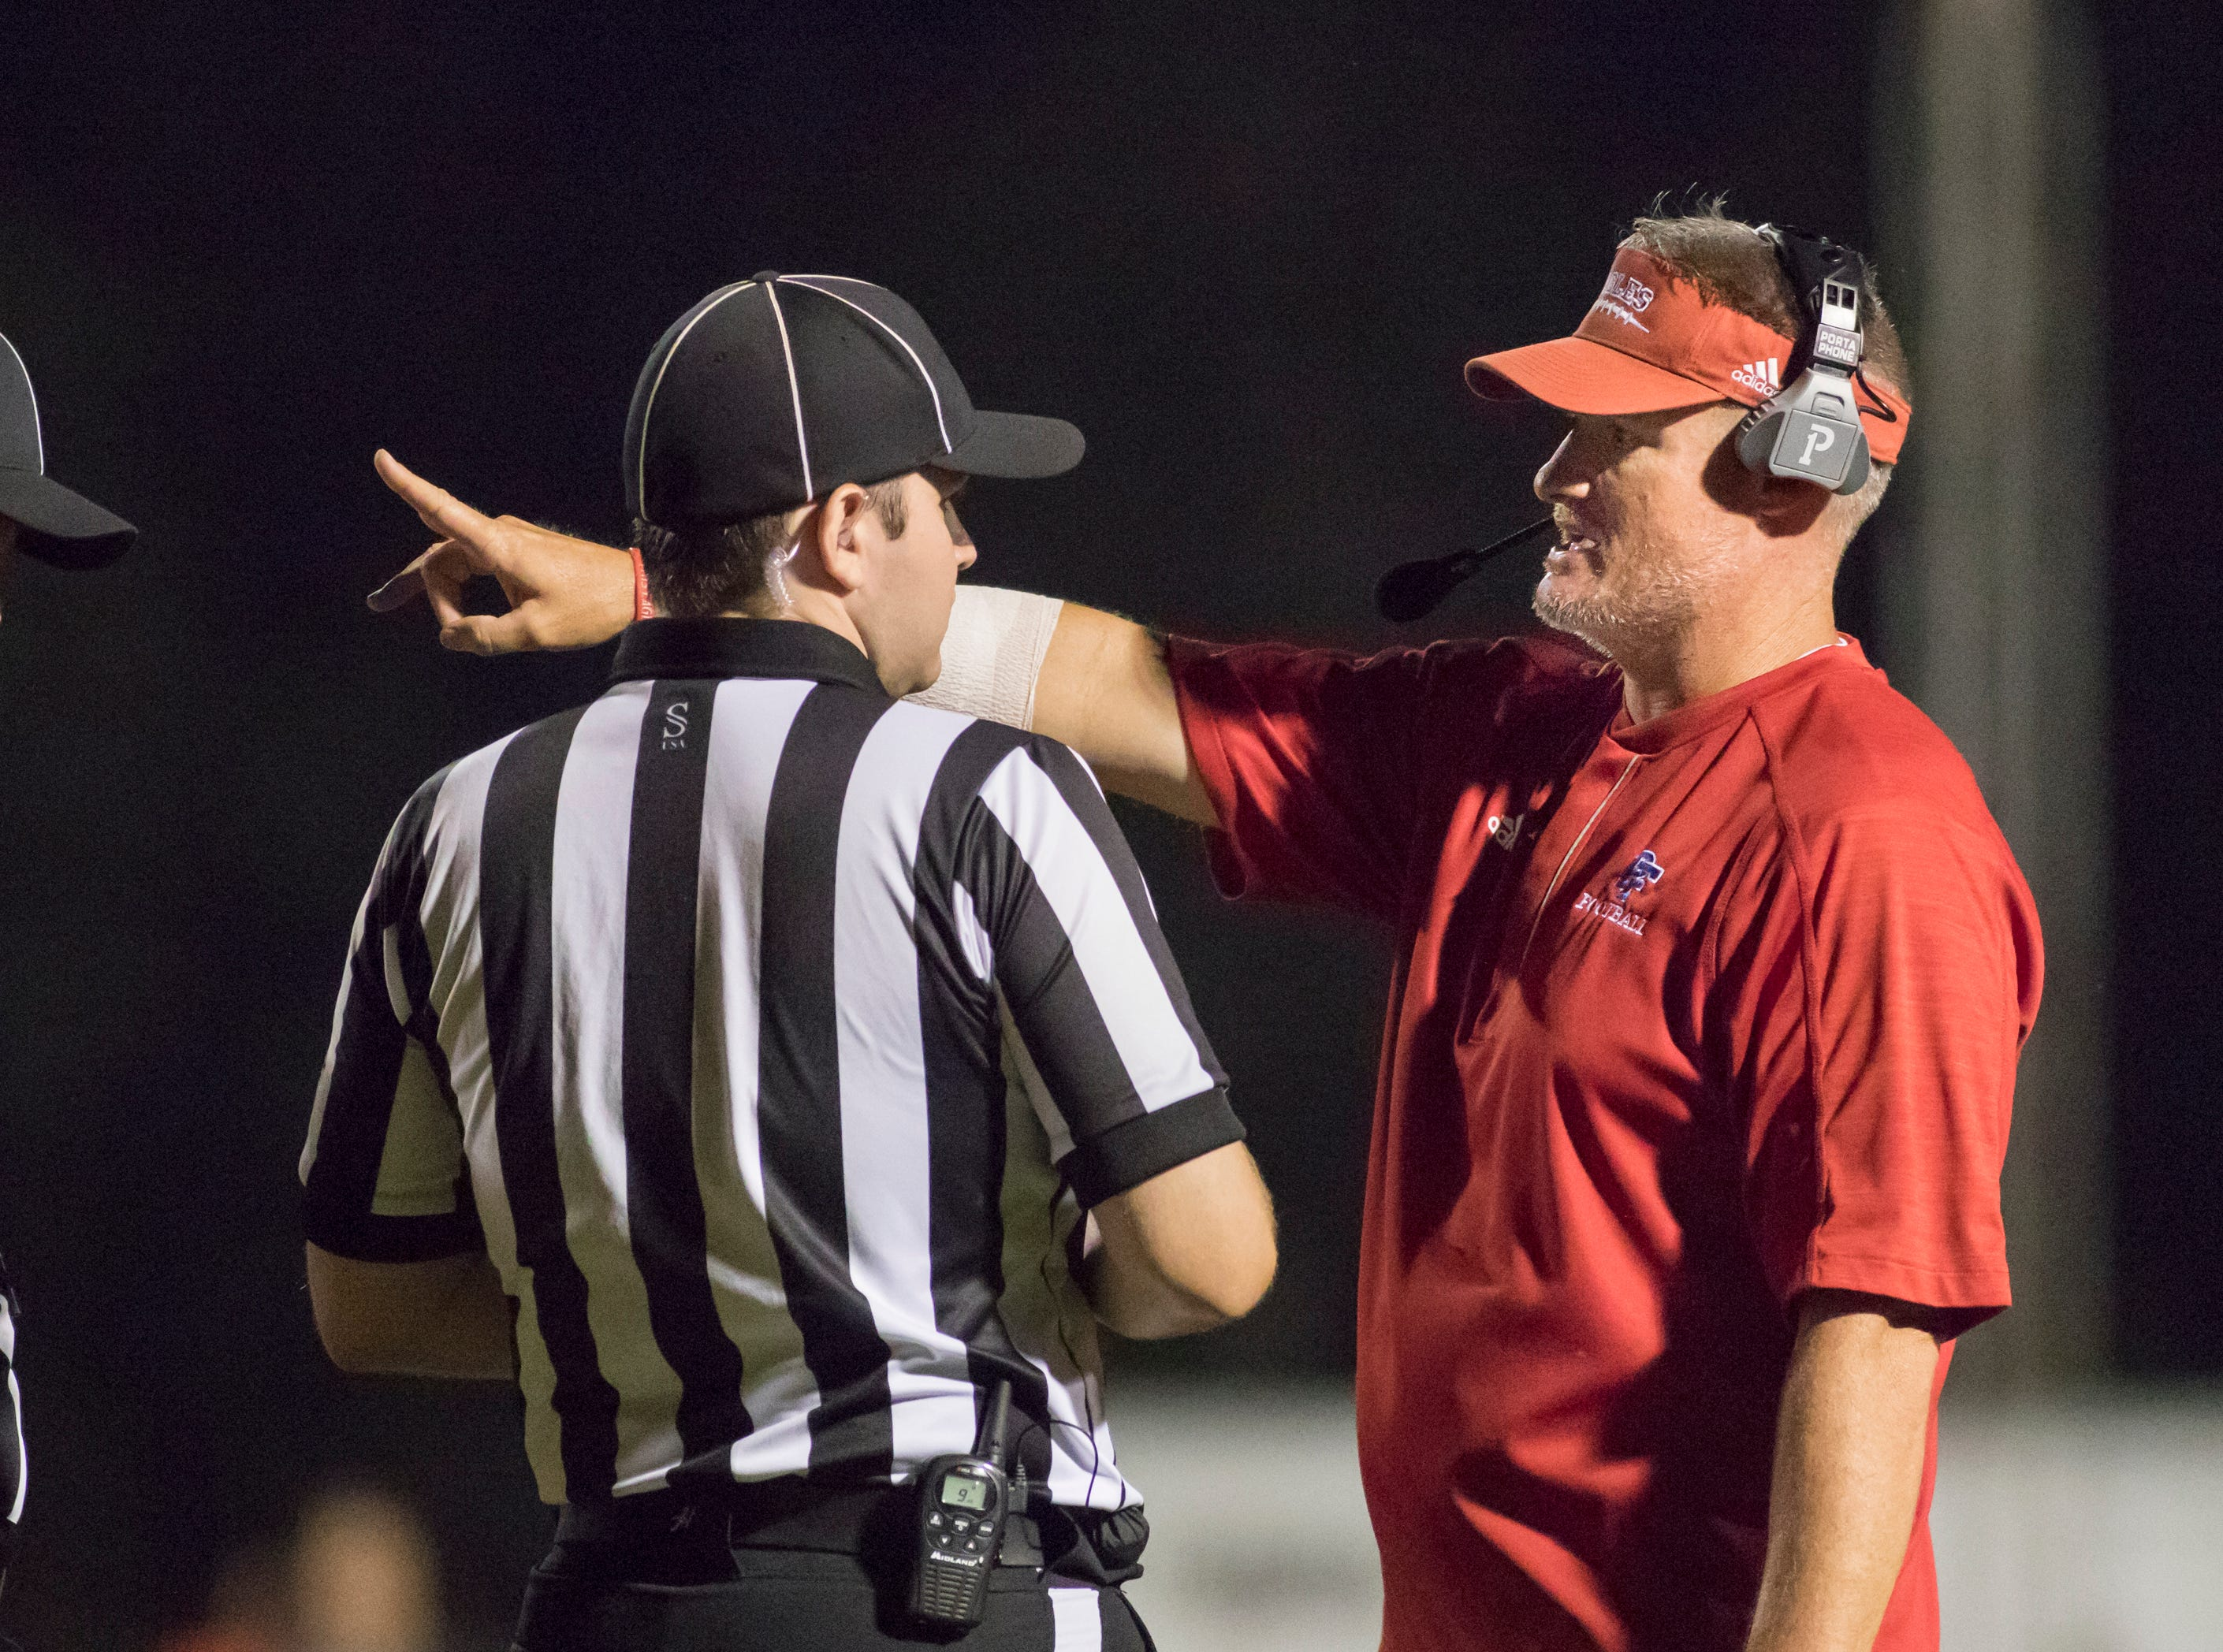 Eagles head coach Jason McDonald talks with the officials during the West Florida vs Pine Forest football game at Pine Forest High School in Pensacola on Friday, October 5, 2018.